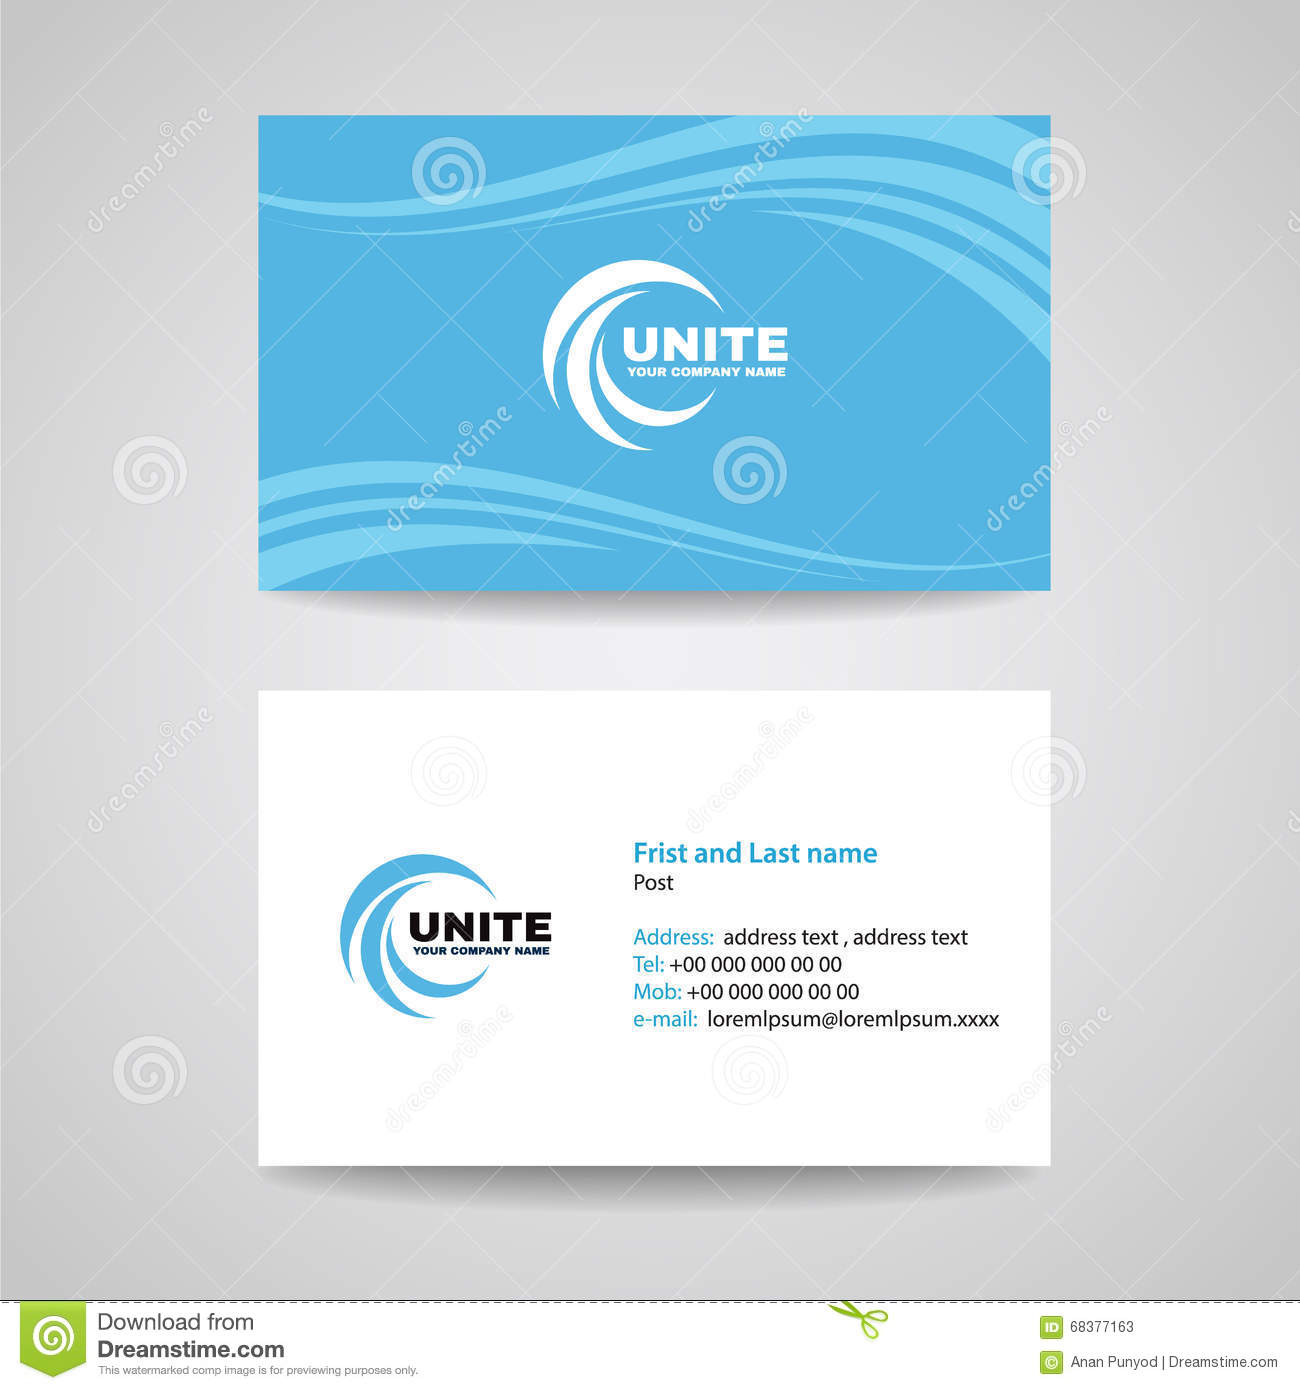 Business card online abn choice image card design and card template business card online abn images card design and card template business card abn amro gallery card reheart Image collections